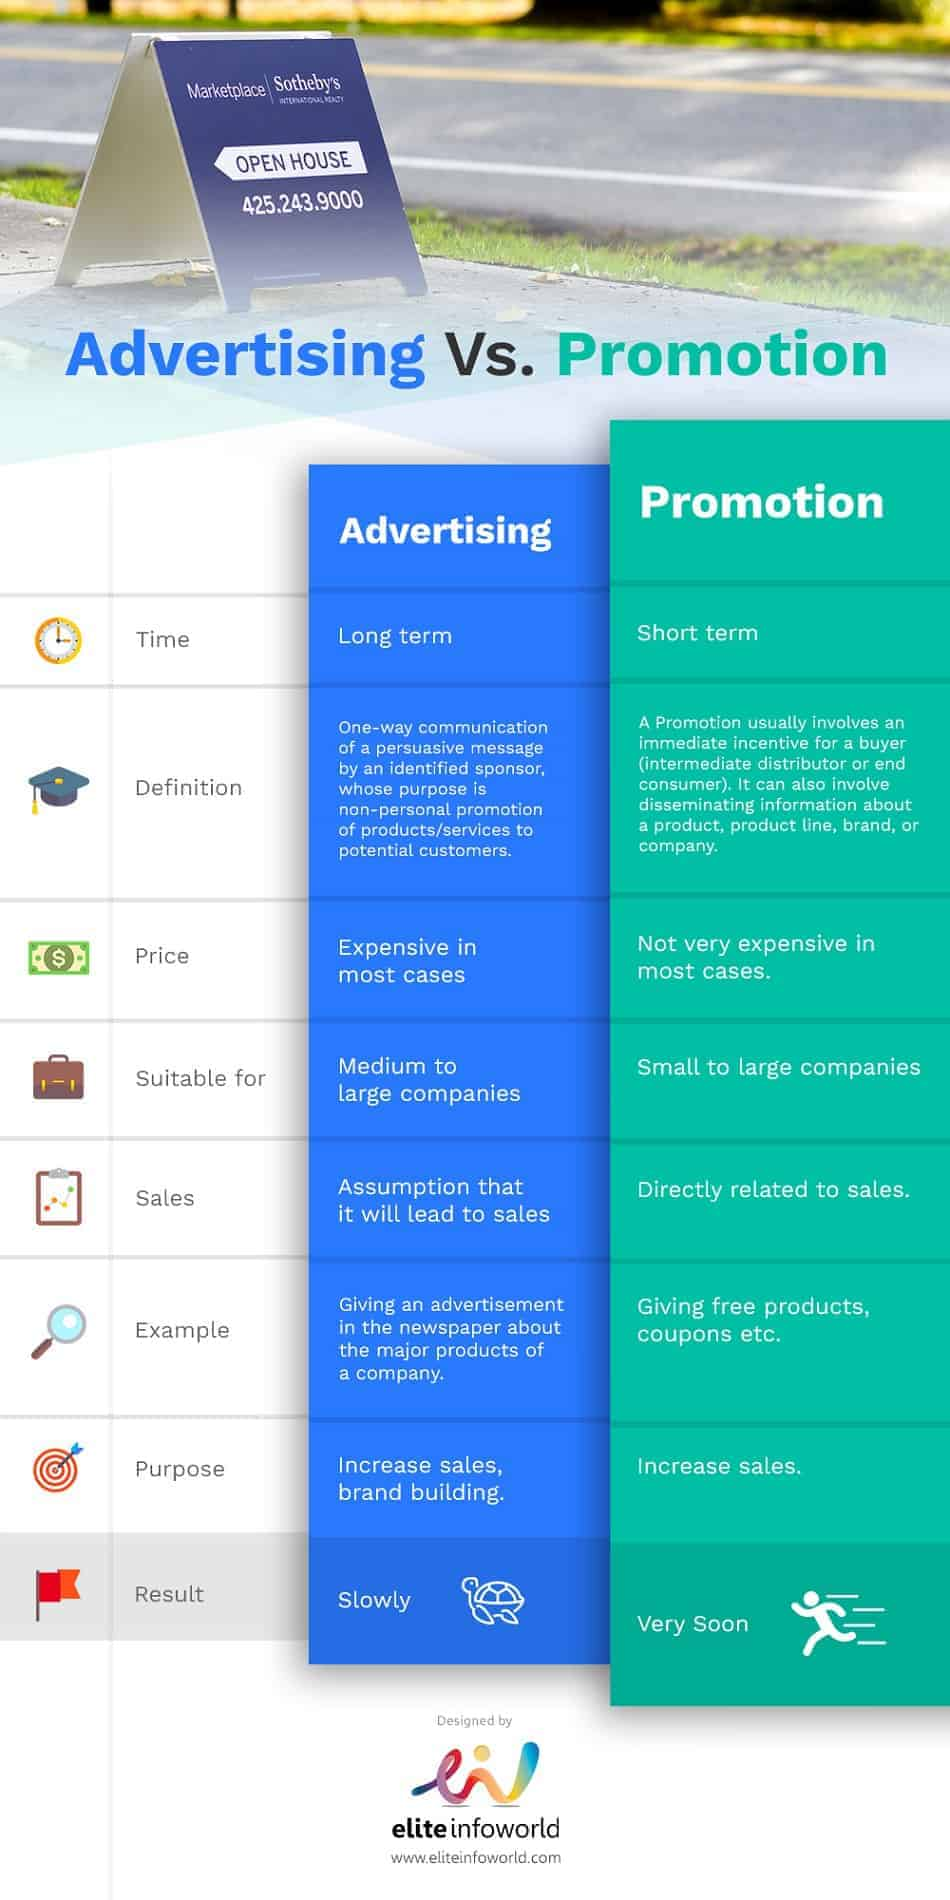 advertising vs promotion infographic